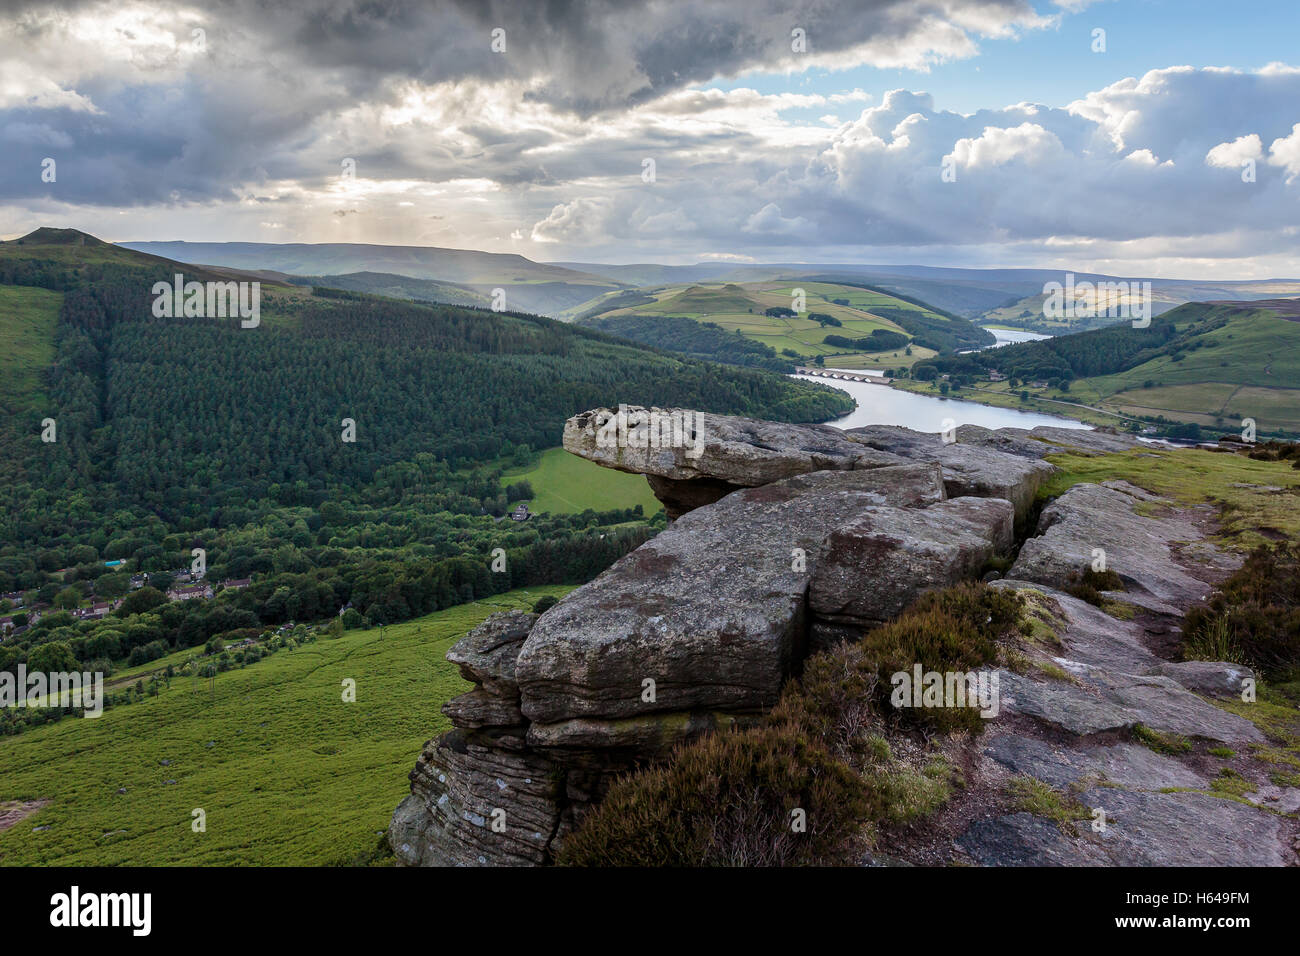 Calm after a storm on Bamford Edge with Ladybower and Derwent dams in the distance - Stock Image